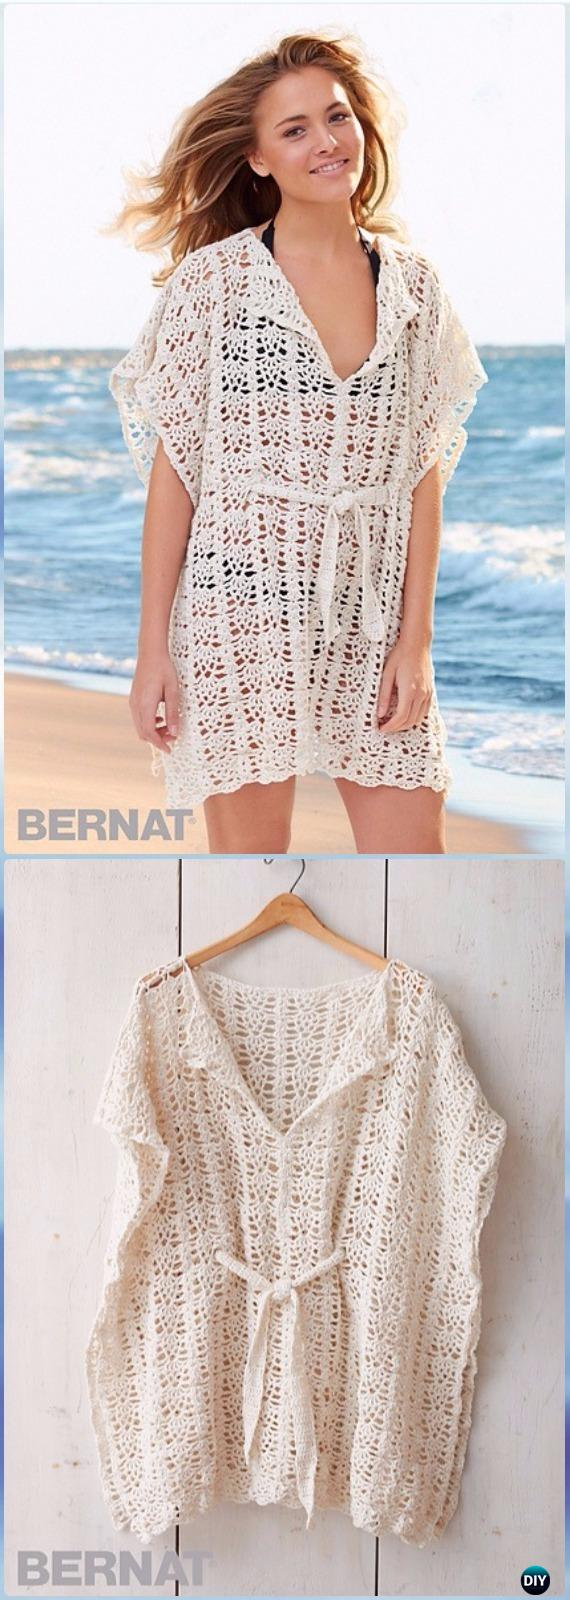 Free Pattern Crochet Cover Up : Crochet Beach Cover Up Free Patterns Women Summer Top